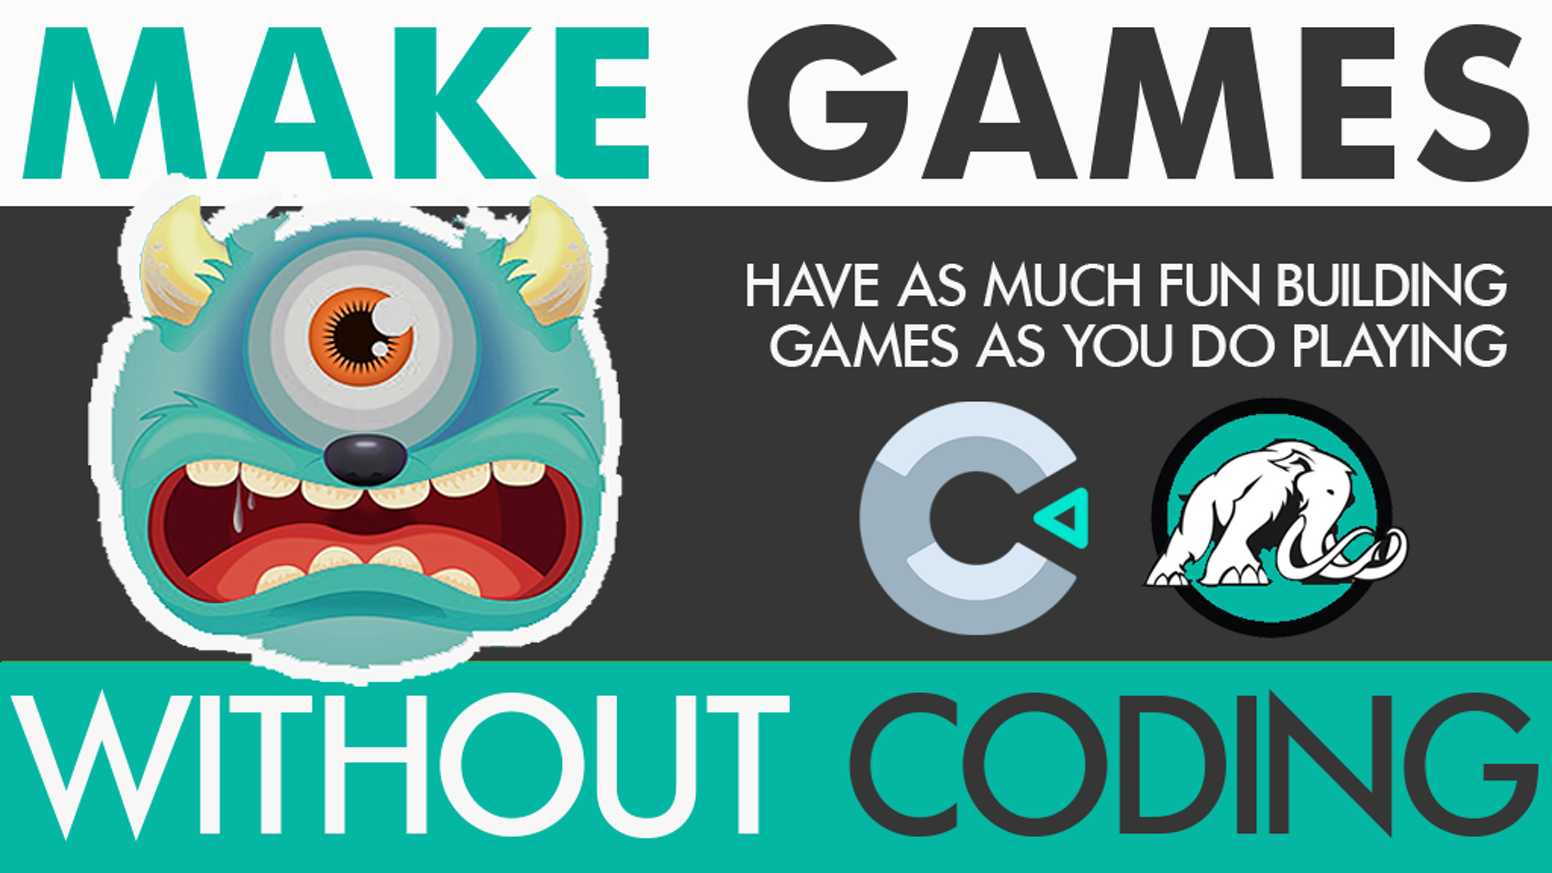 Pledge now to get an epic 6-level course that will take you from newbie to pro at making your own computer games.